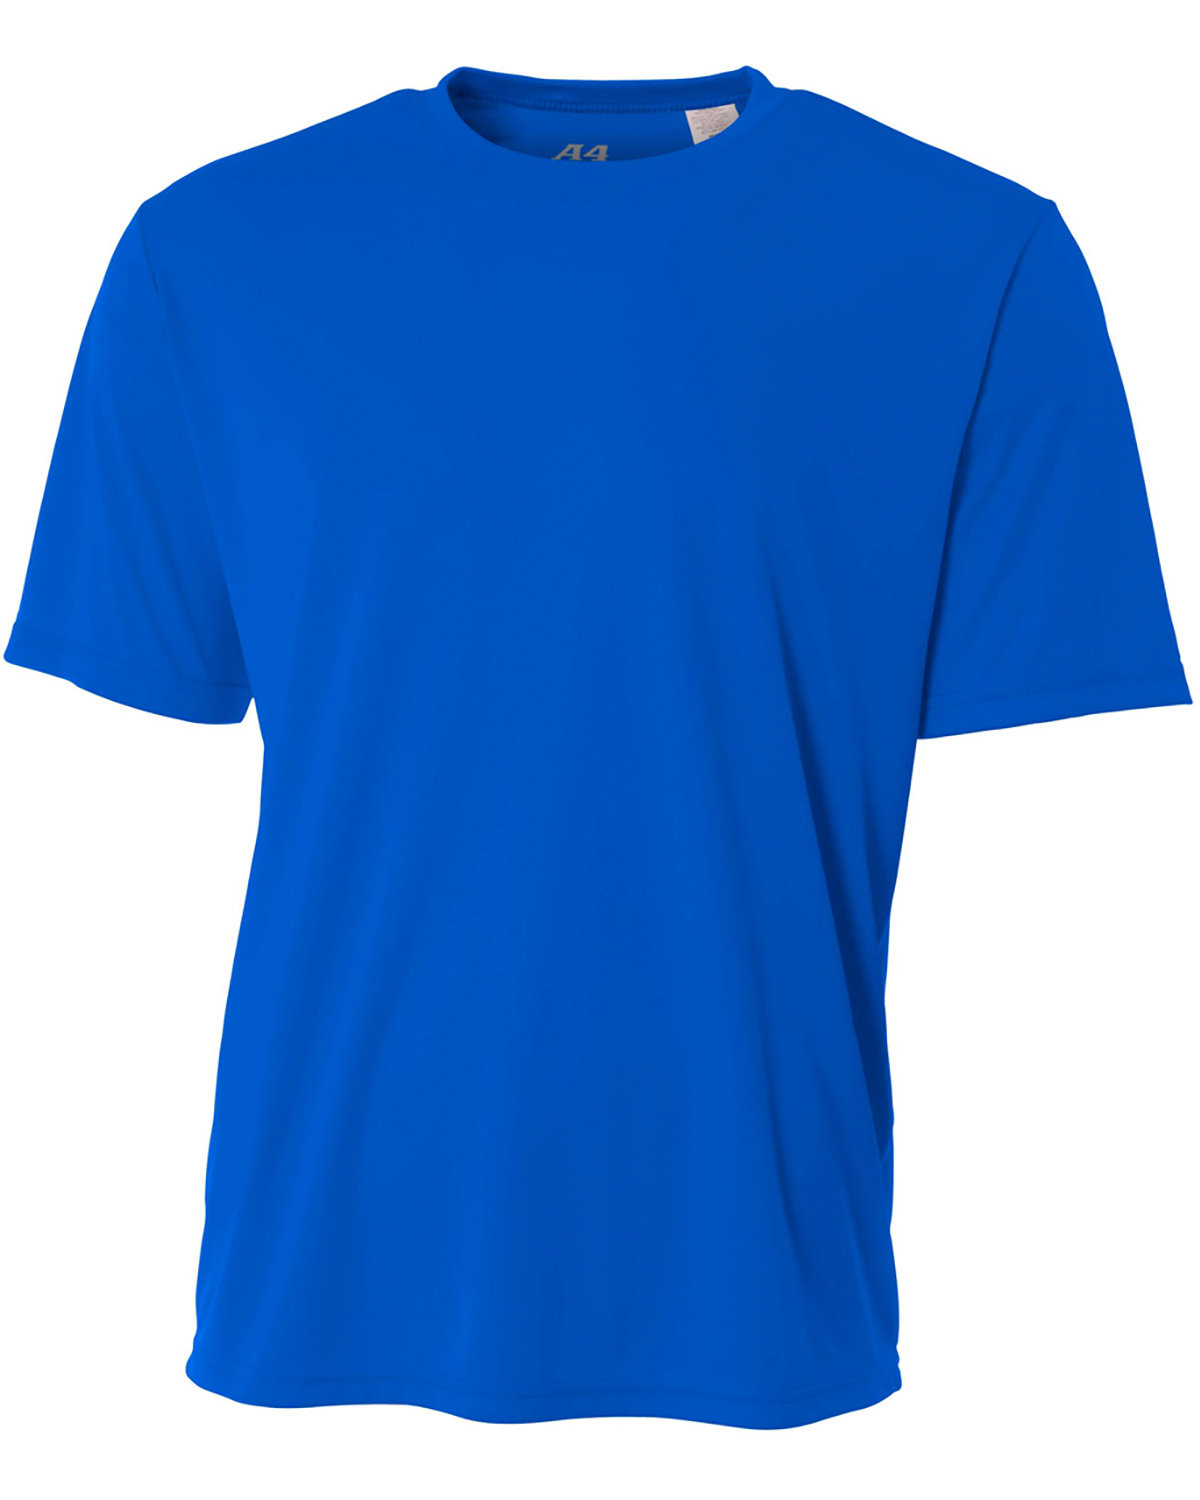 A4 Youth Cooling Performance T-Shirt ROYAL